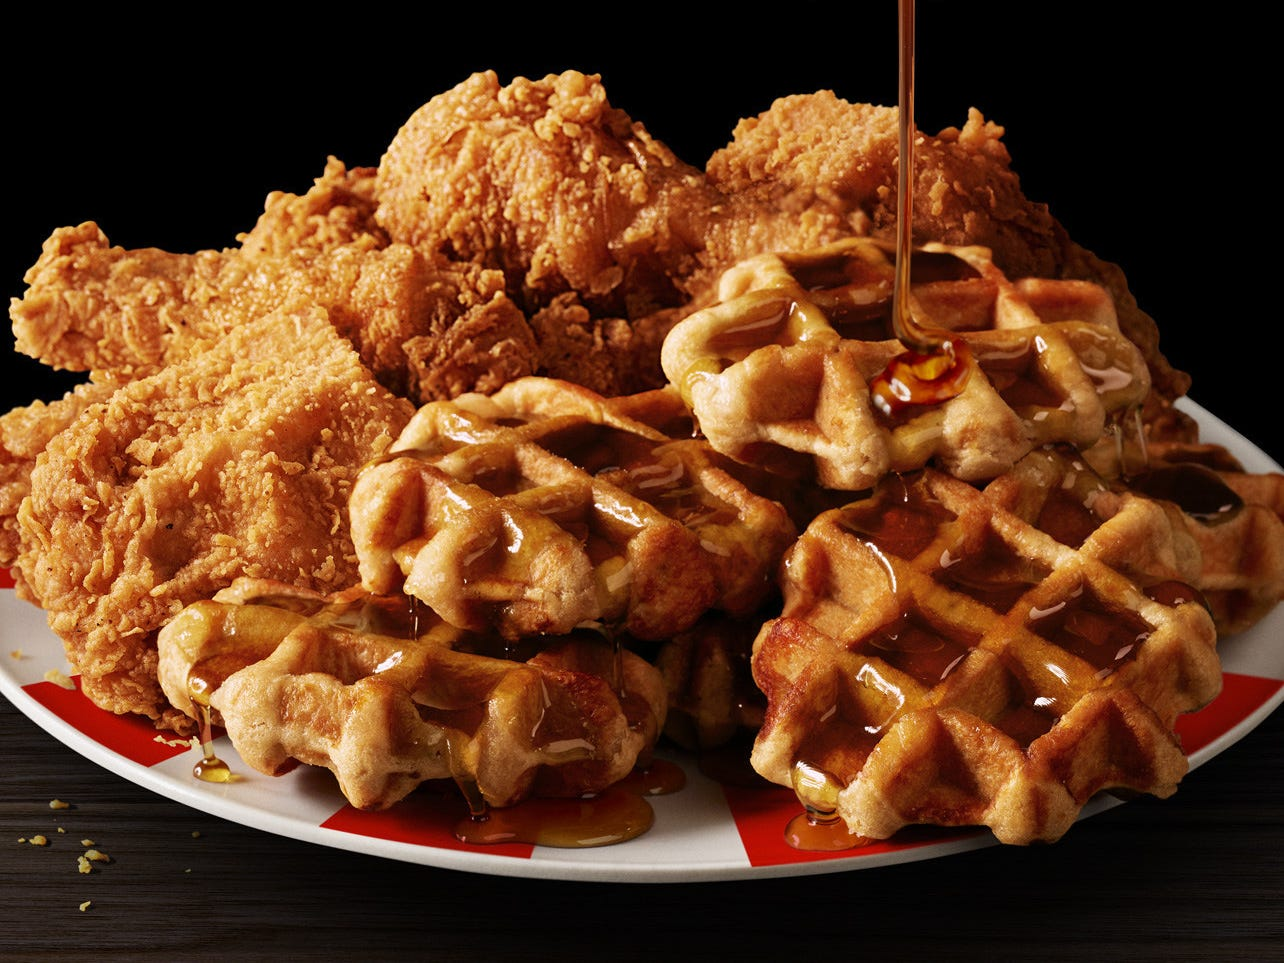 Chicken and waffles arrive at KFC nationwide through Dec. 31